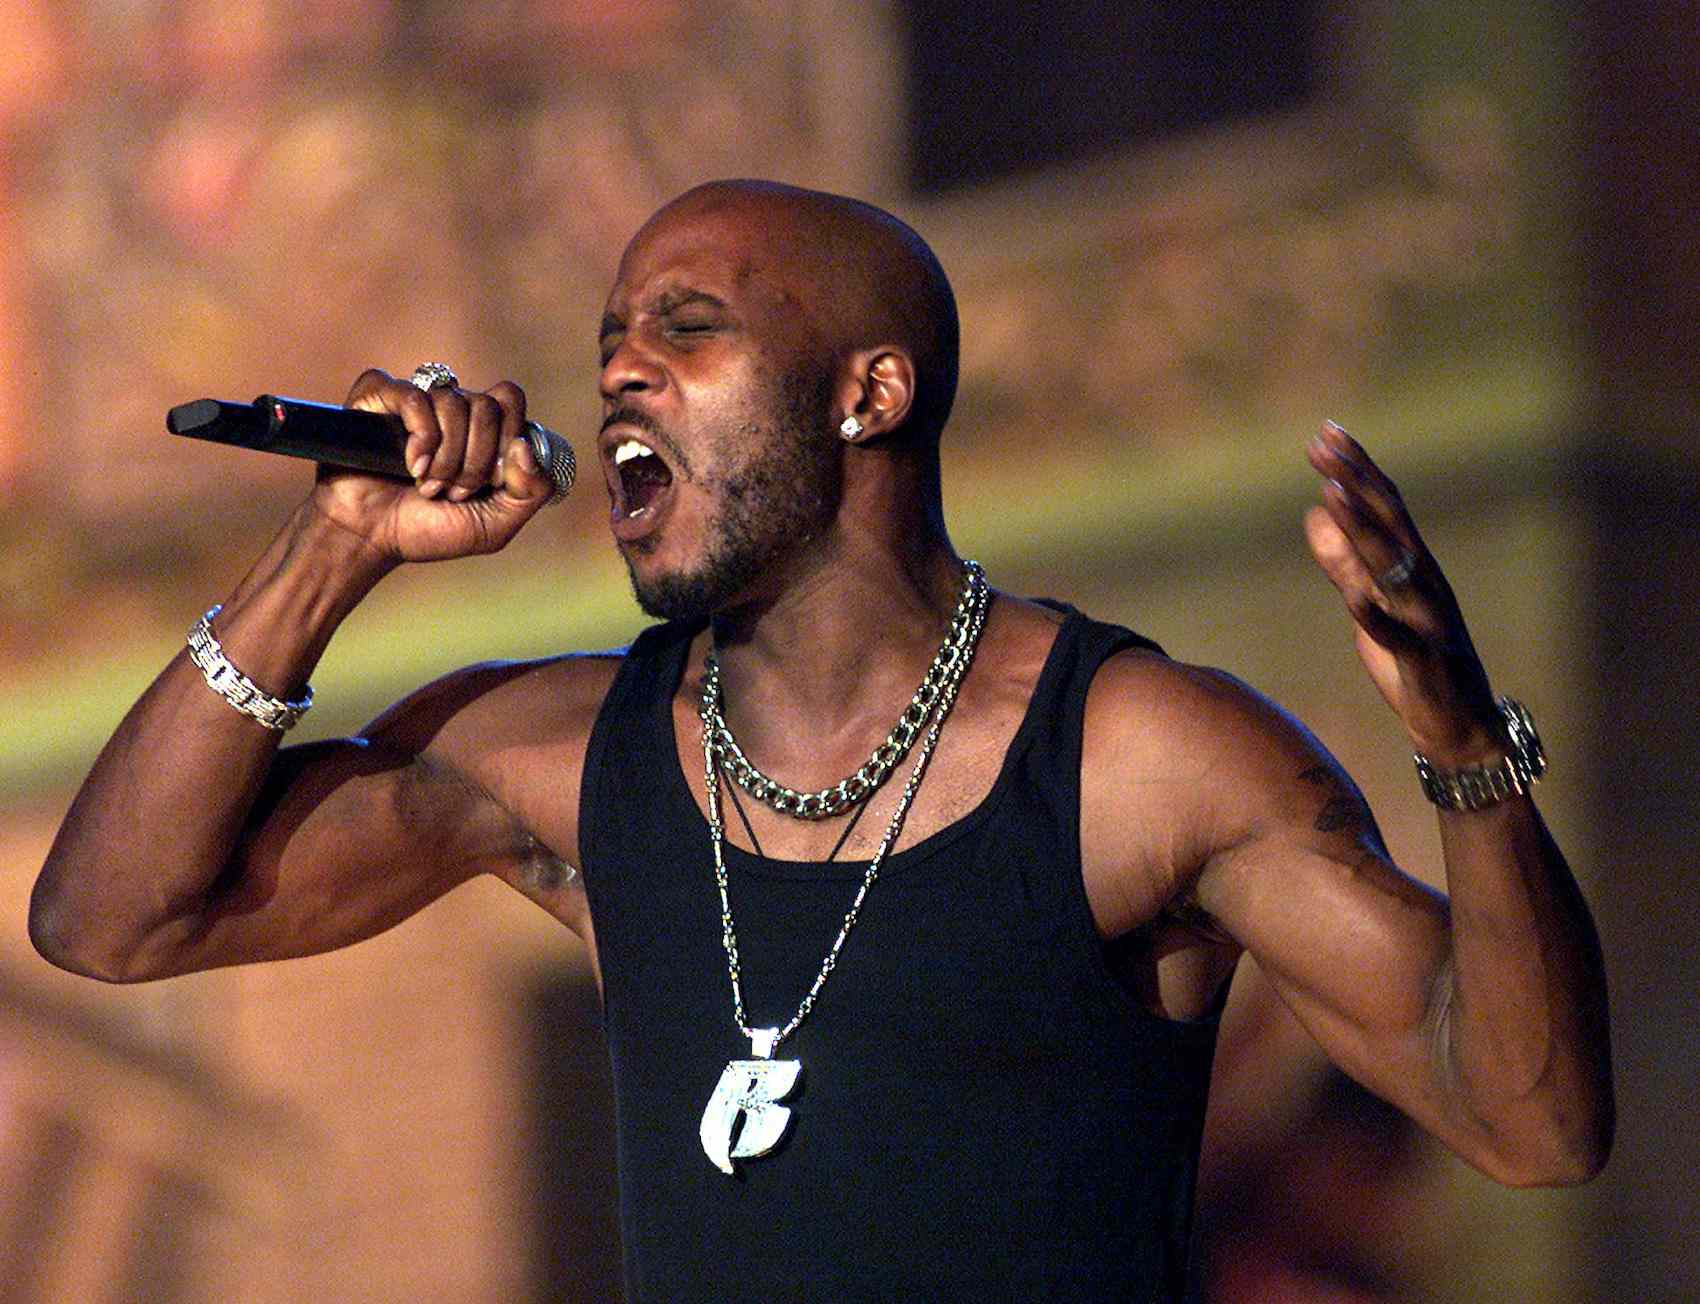 25 Rap Songs to Get You Pumped Up